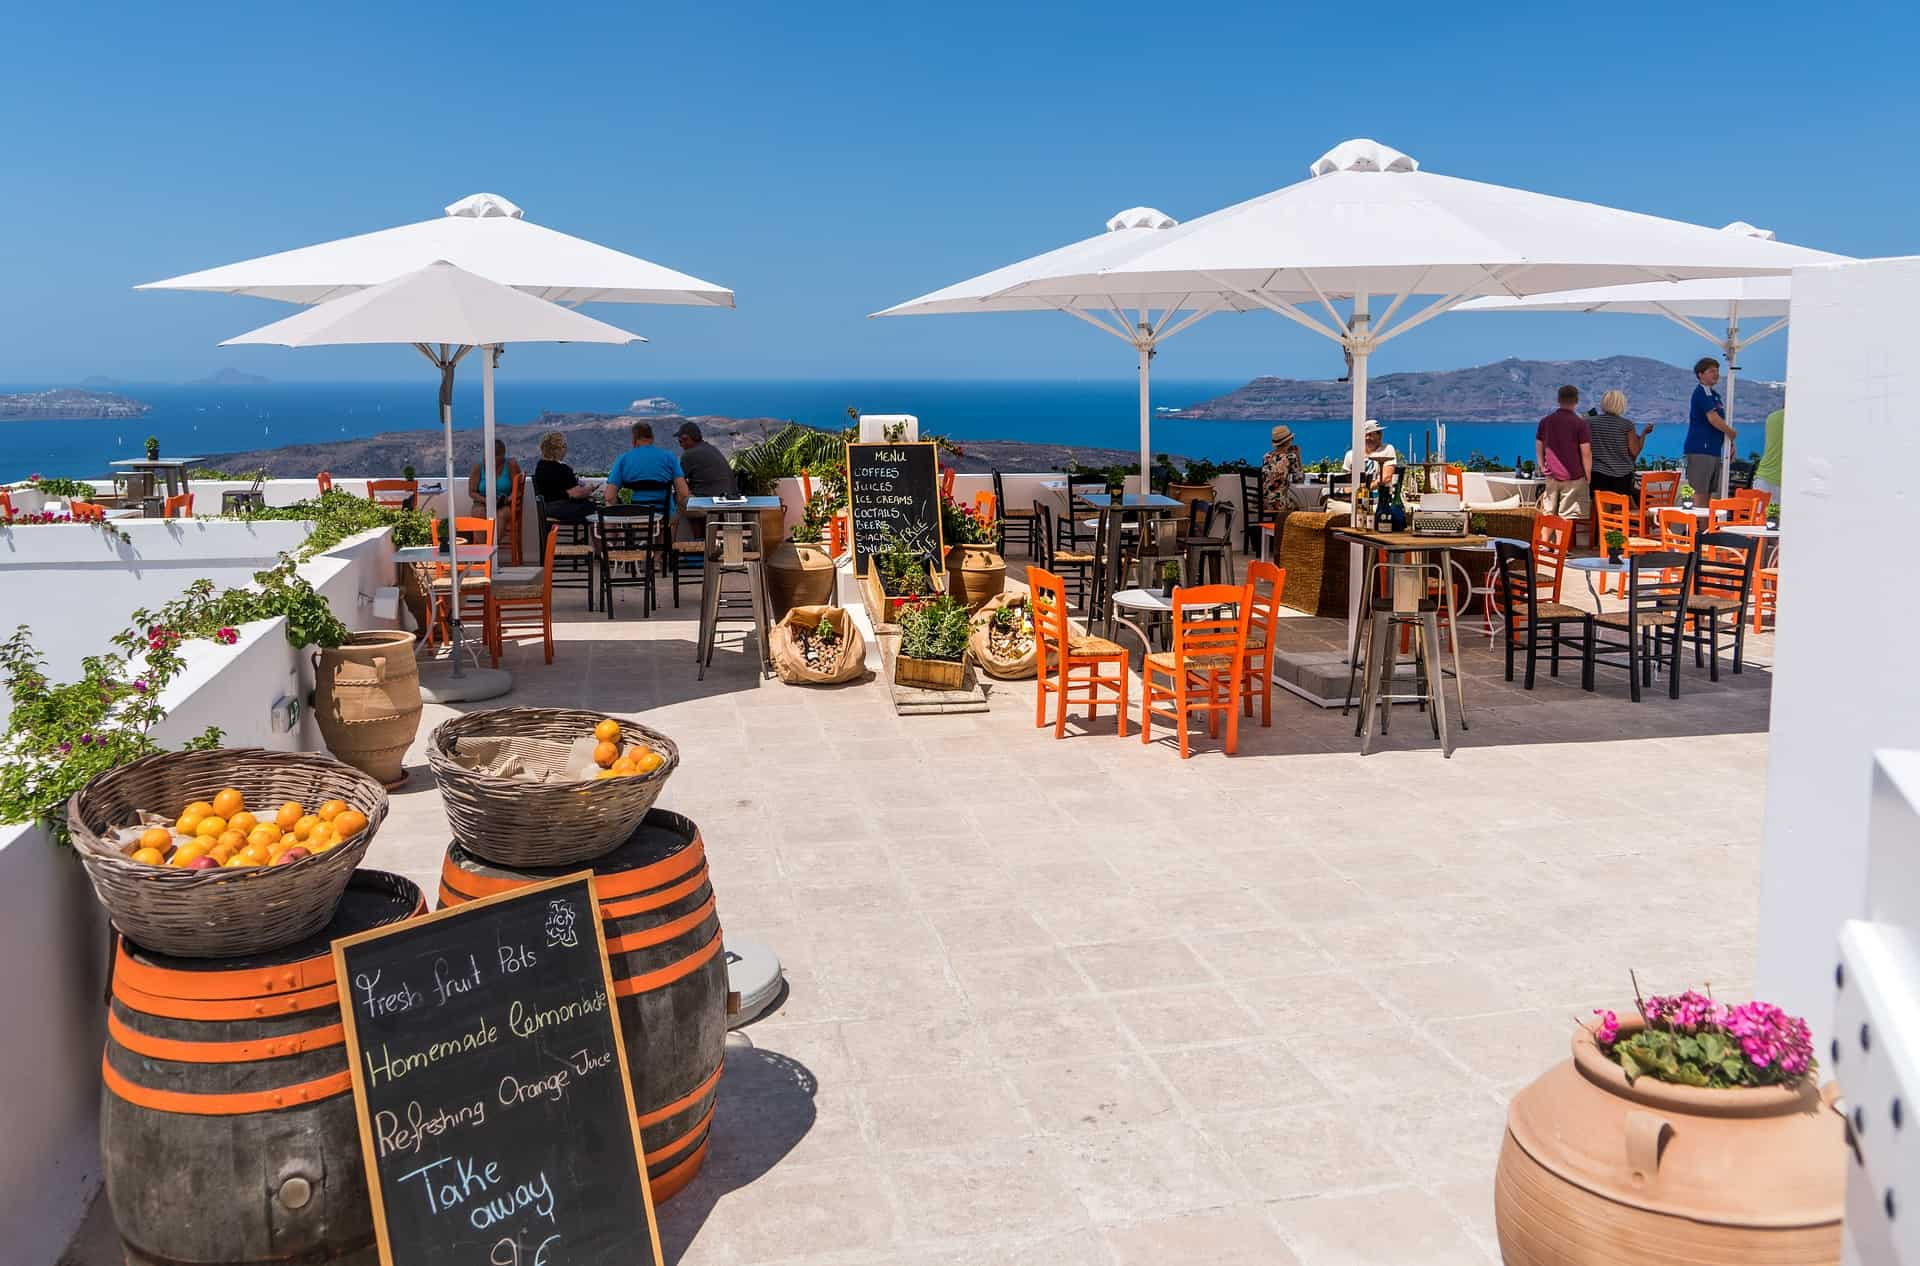 Santorini restaurant, a good place to save money on food while traveling